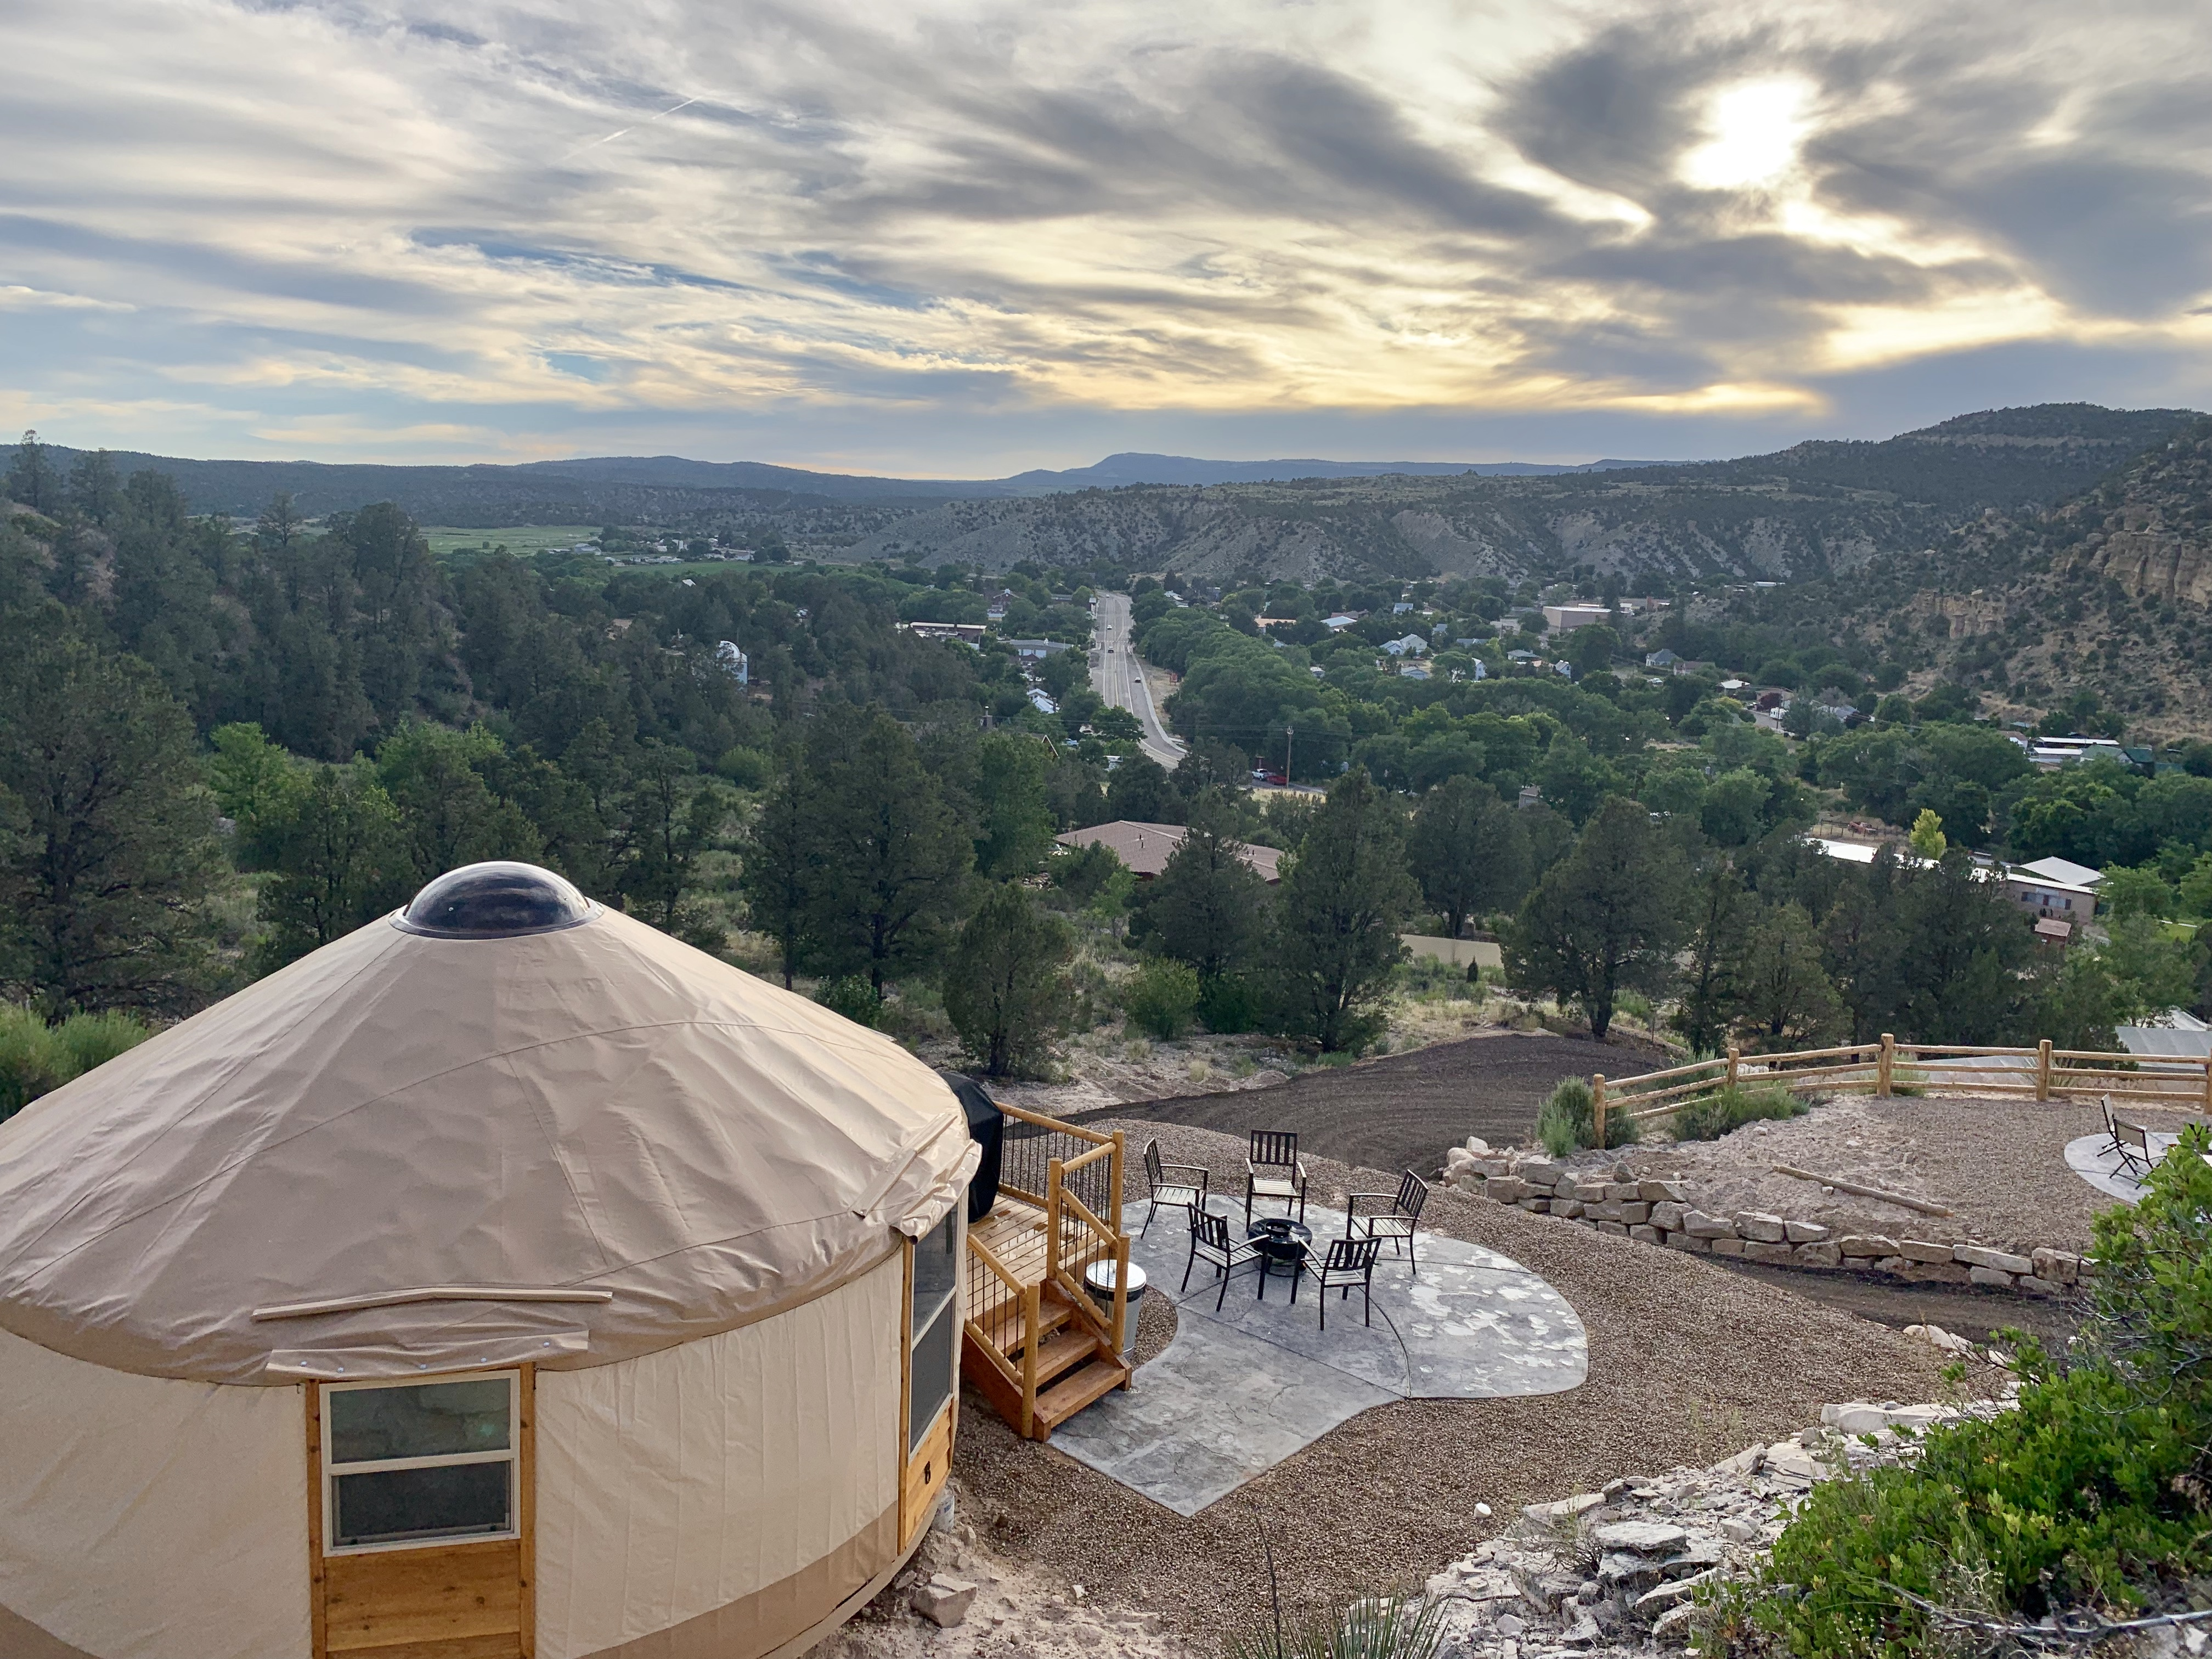 Yurt Overlook At East Zion Resort 8 King Suite Yurts For Rent In Orderville Utah United States